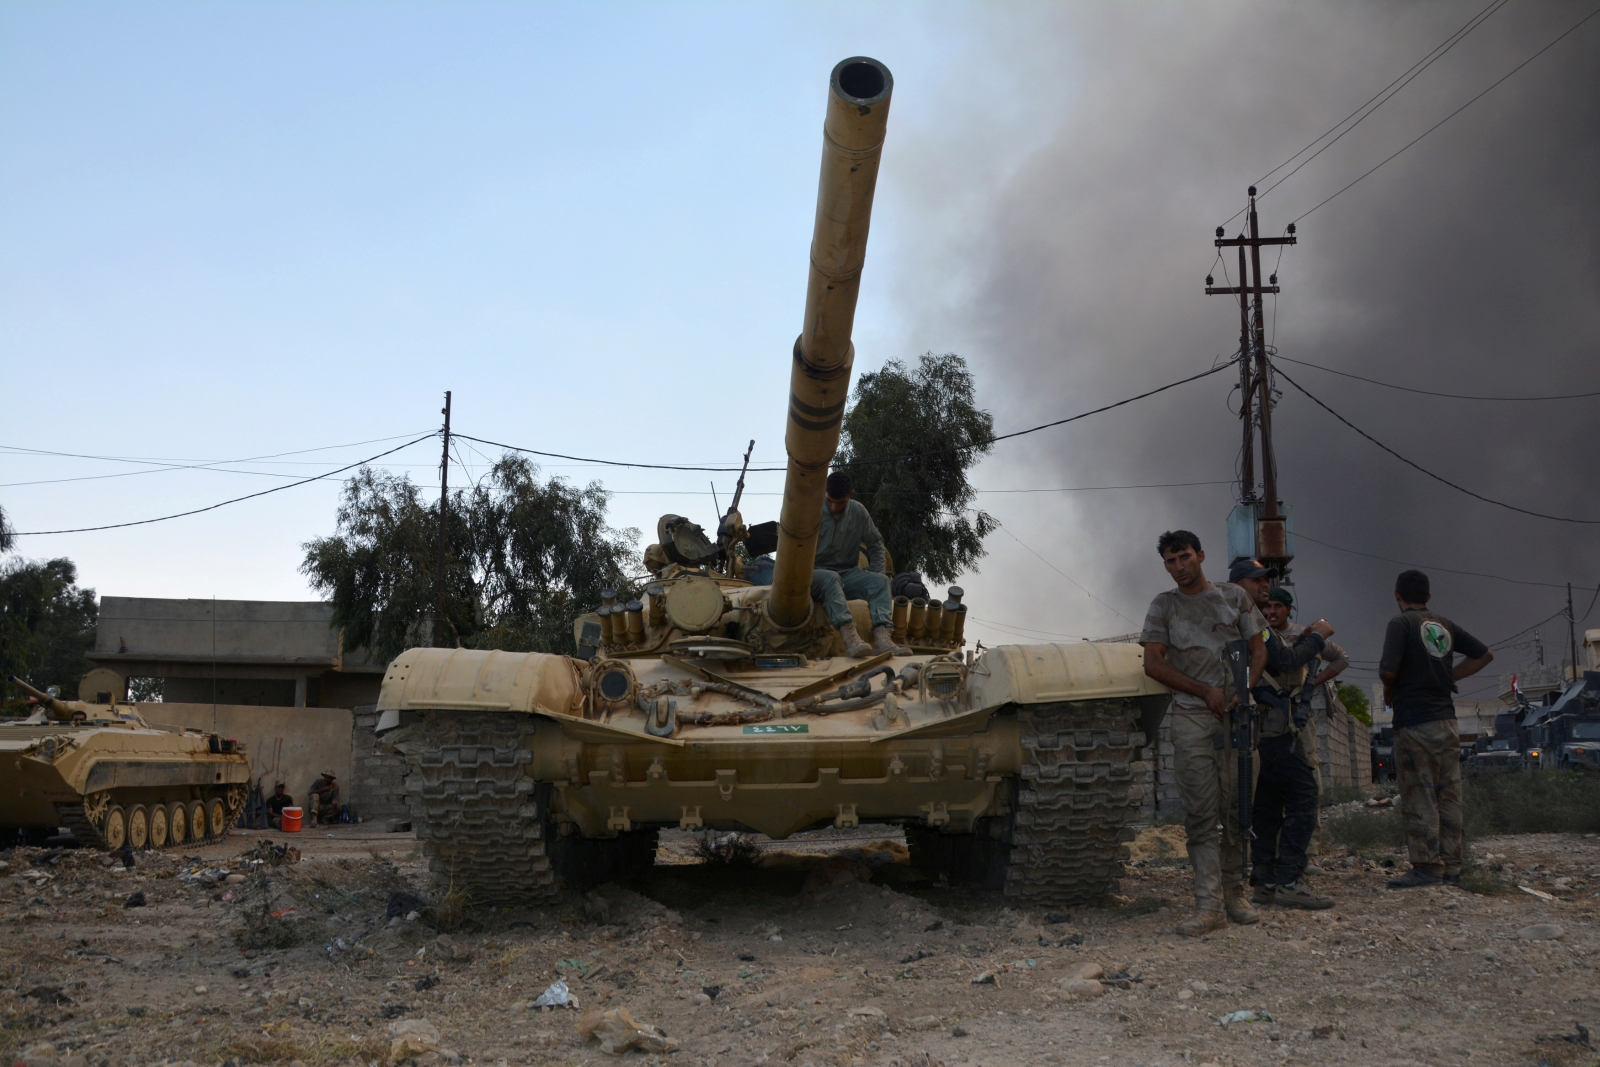 United States troops support Iraqi efforts to capture last ISIS-held city, Mosul